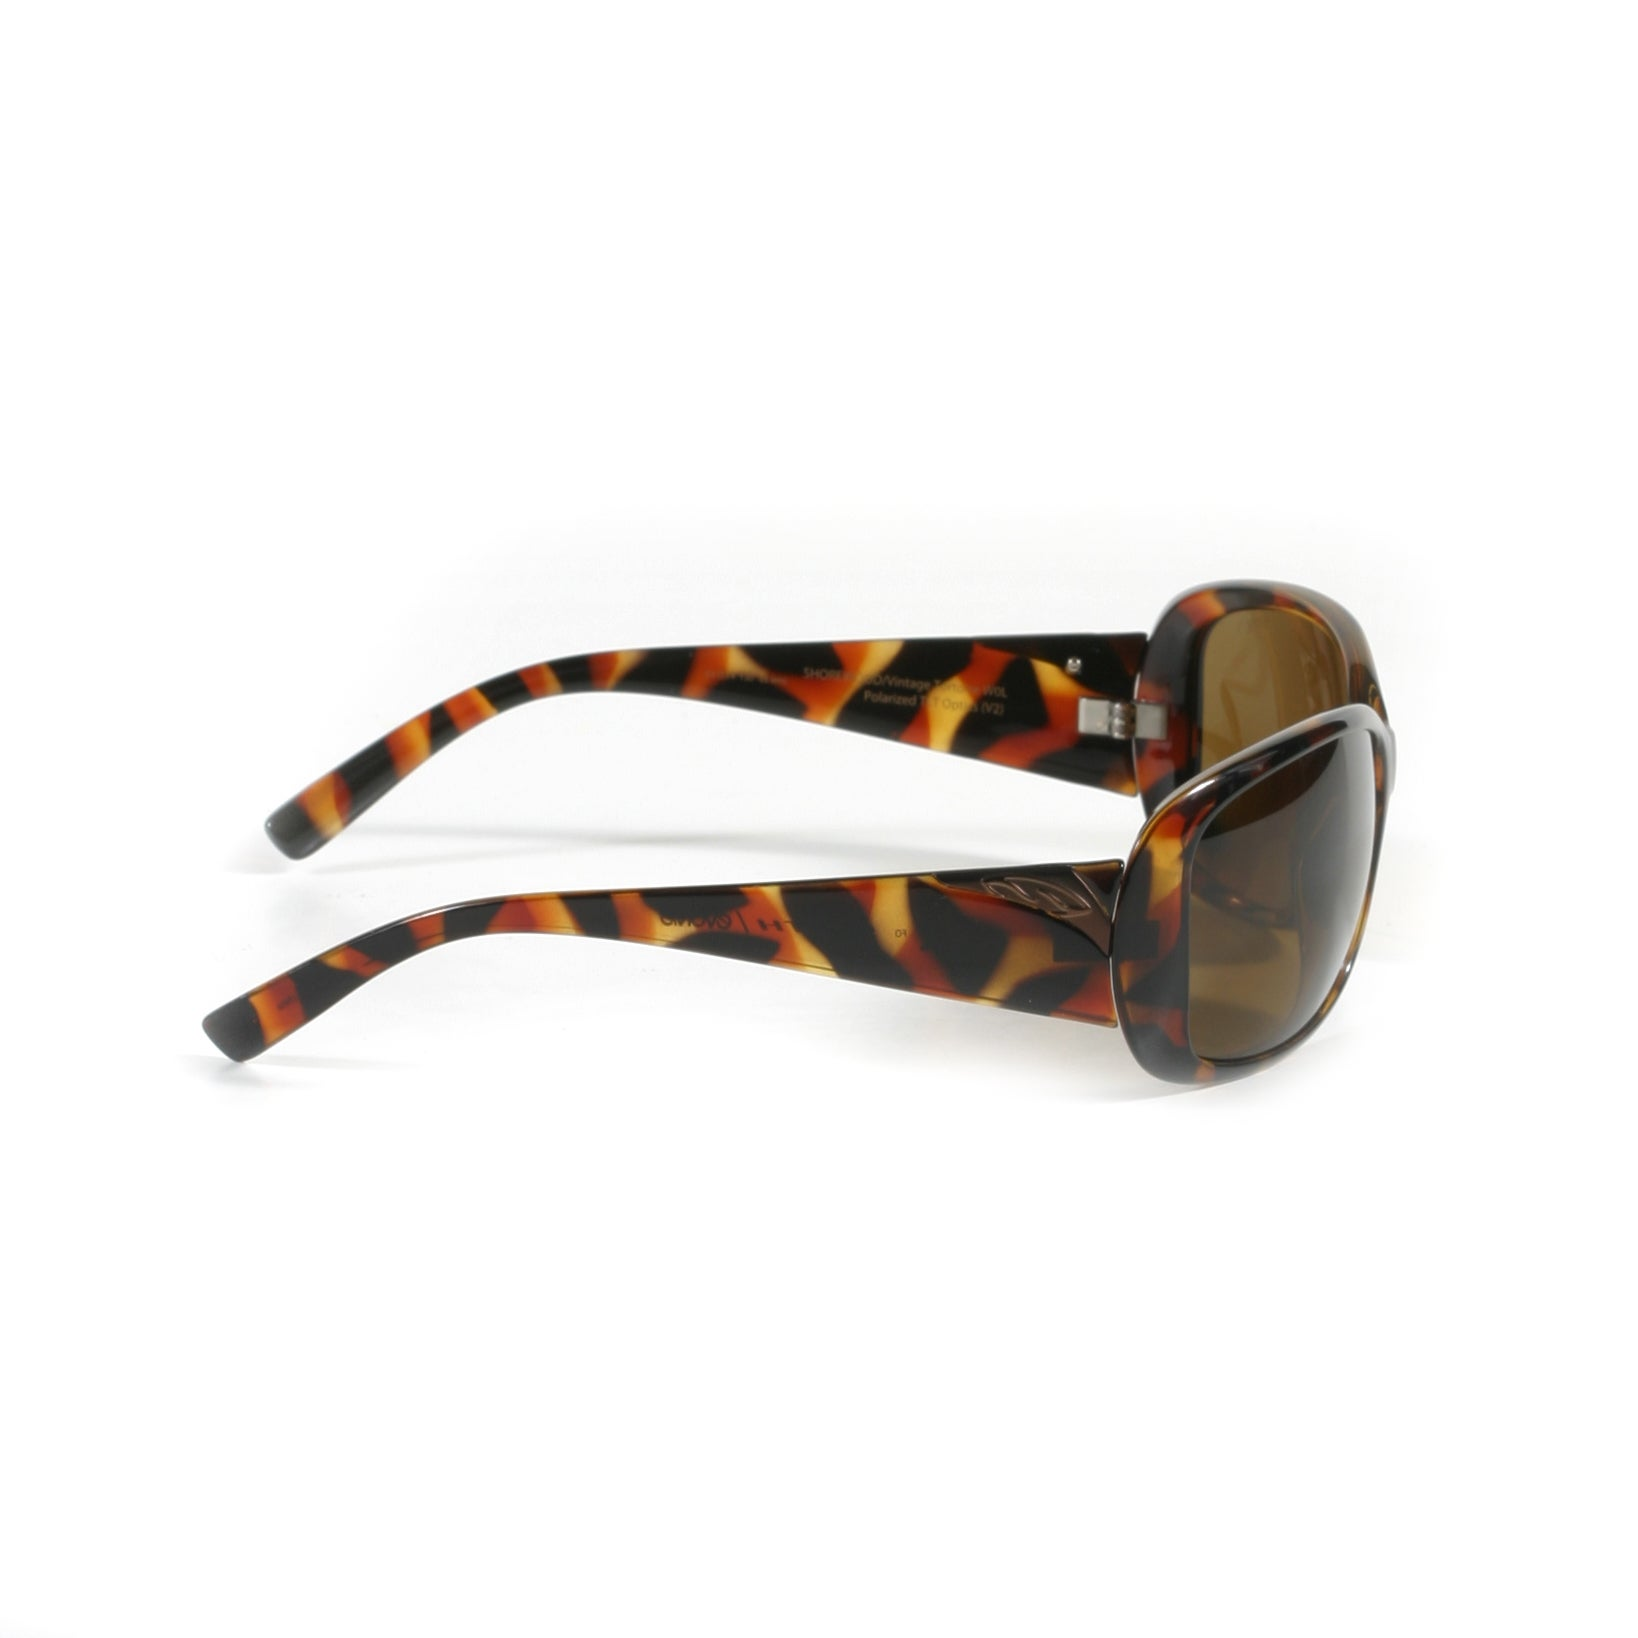 6e73d7dd05 Shop Smith Optics Women s Shorewood Polarized Brown Glasses - Free Shipping  On Orders Over  45 - Overstock - 11552149